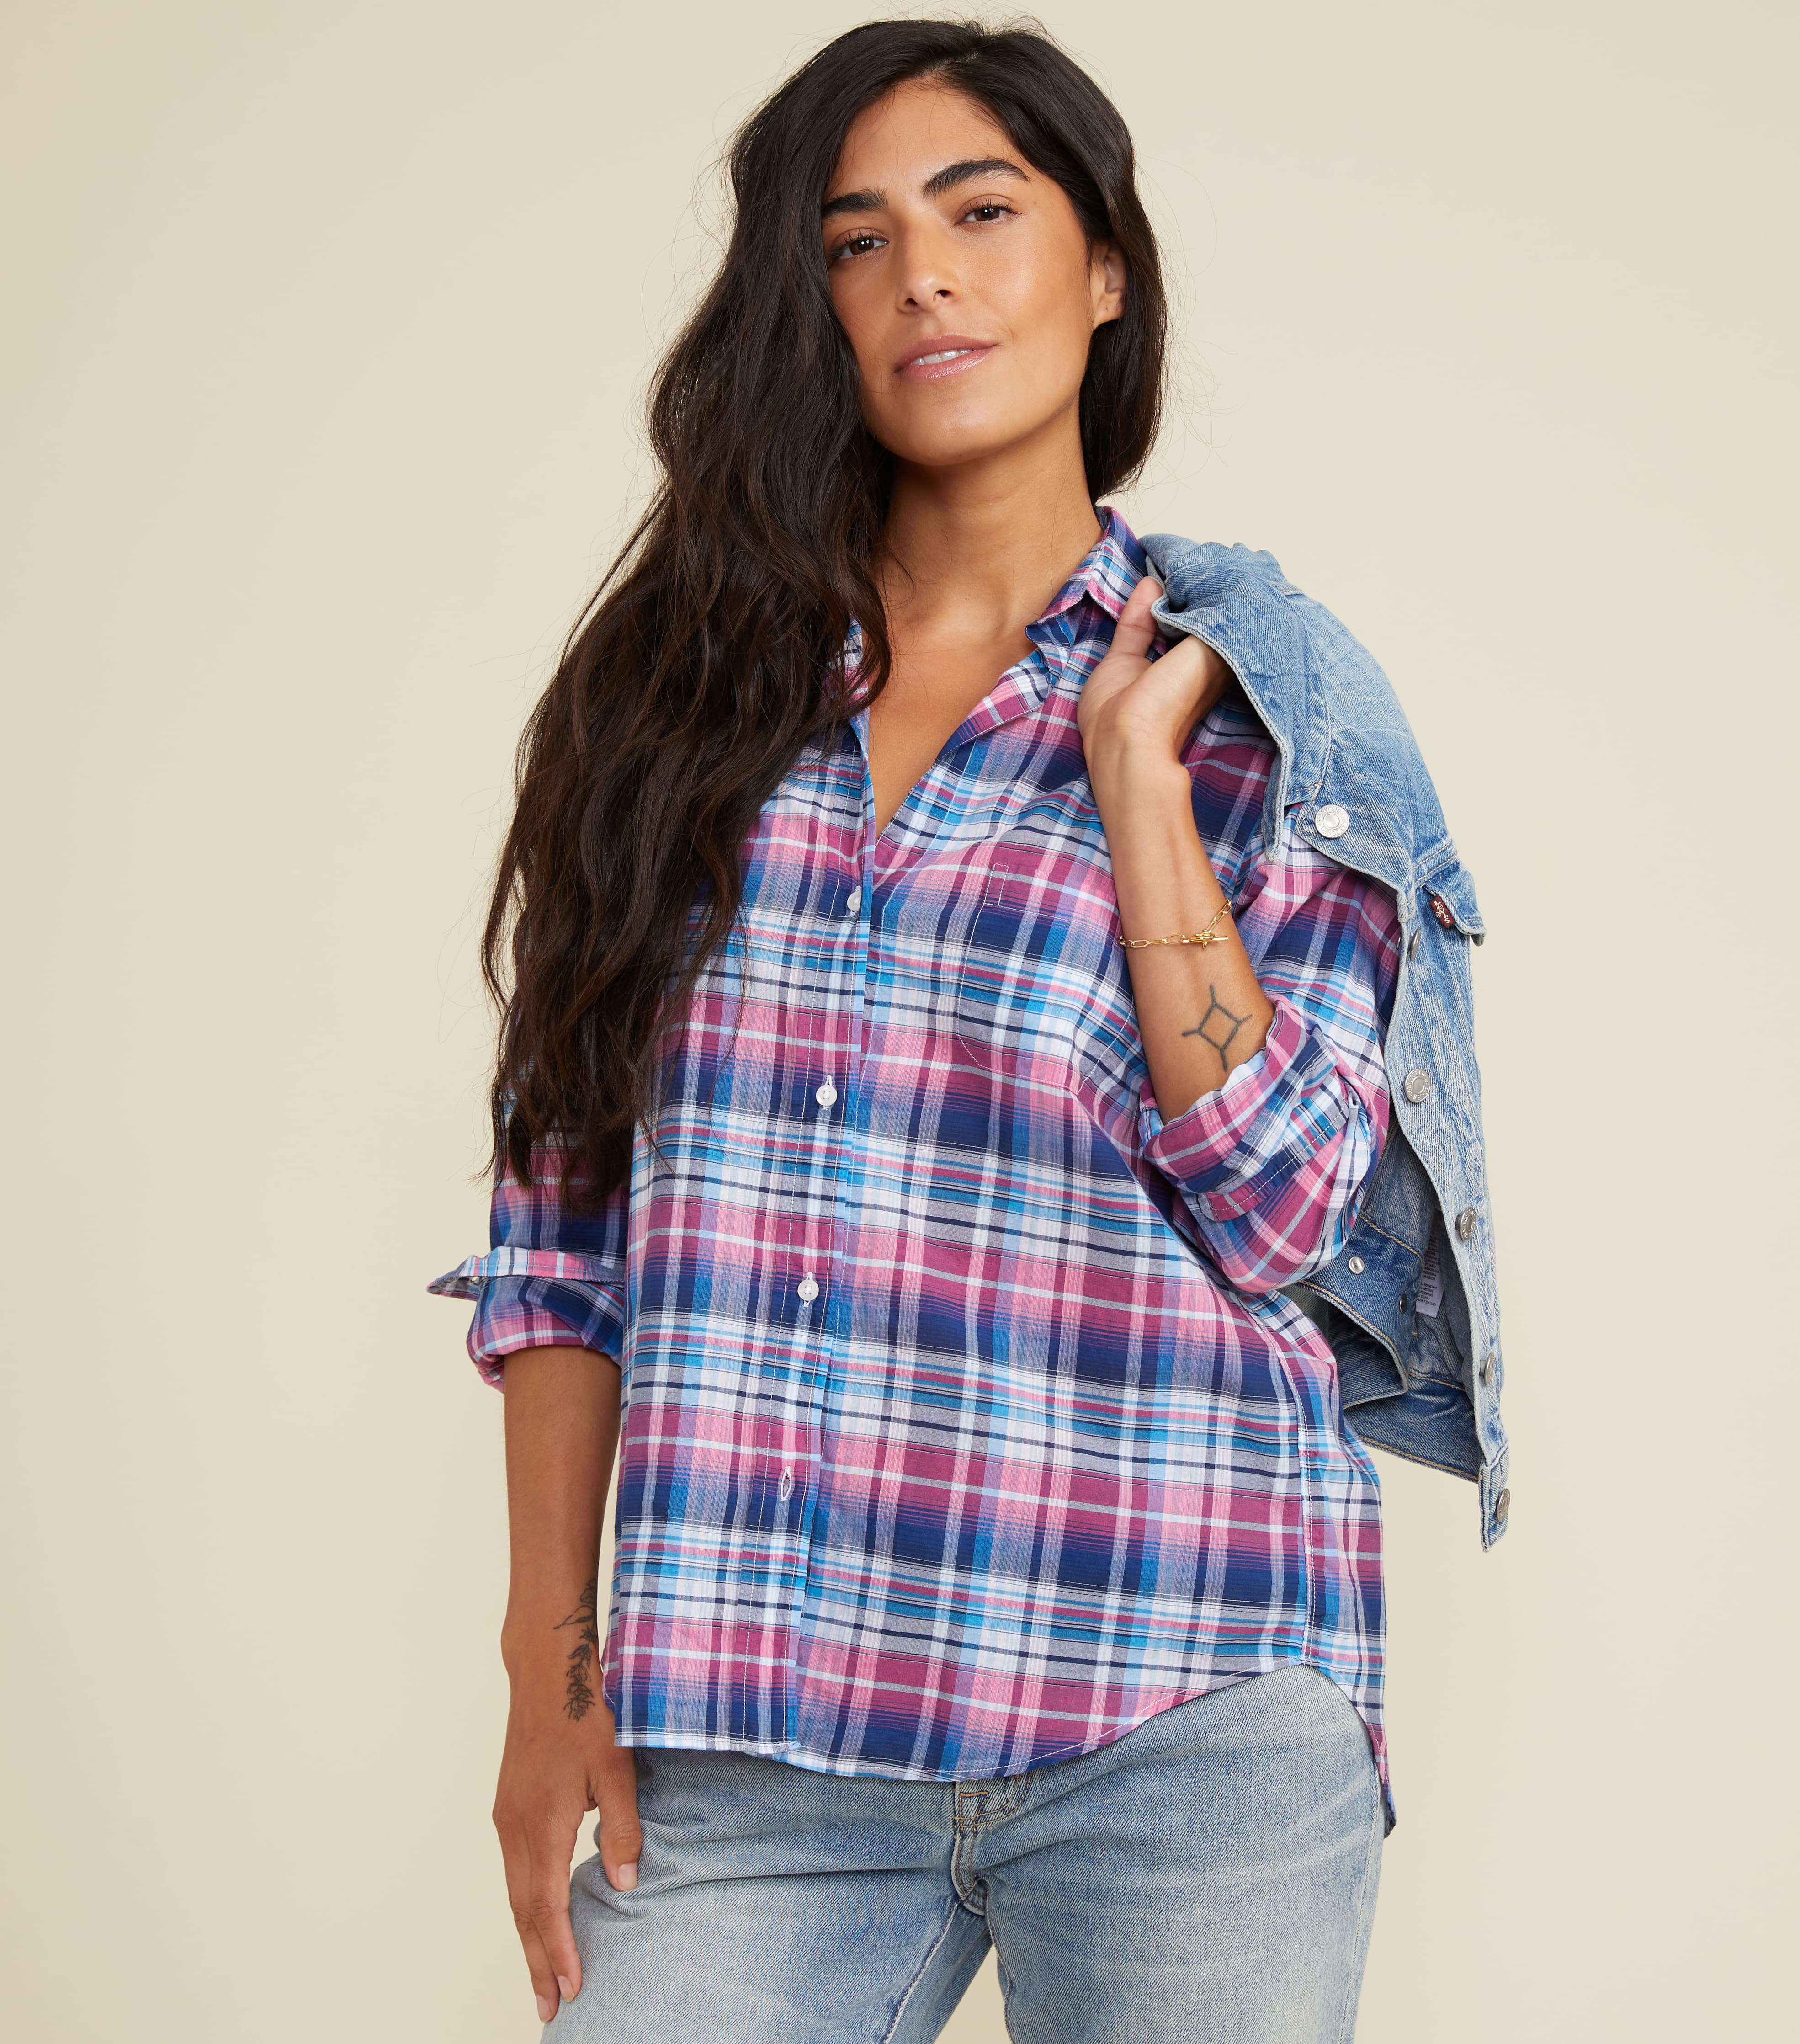 Image of The Hero Blue and Pink Multi Plaid, Tissue Cotton Final Sale